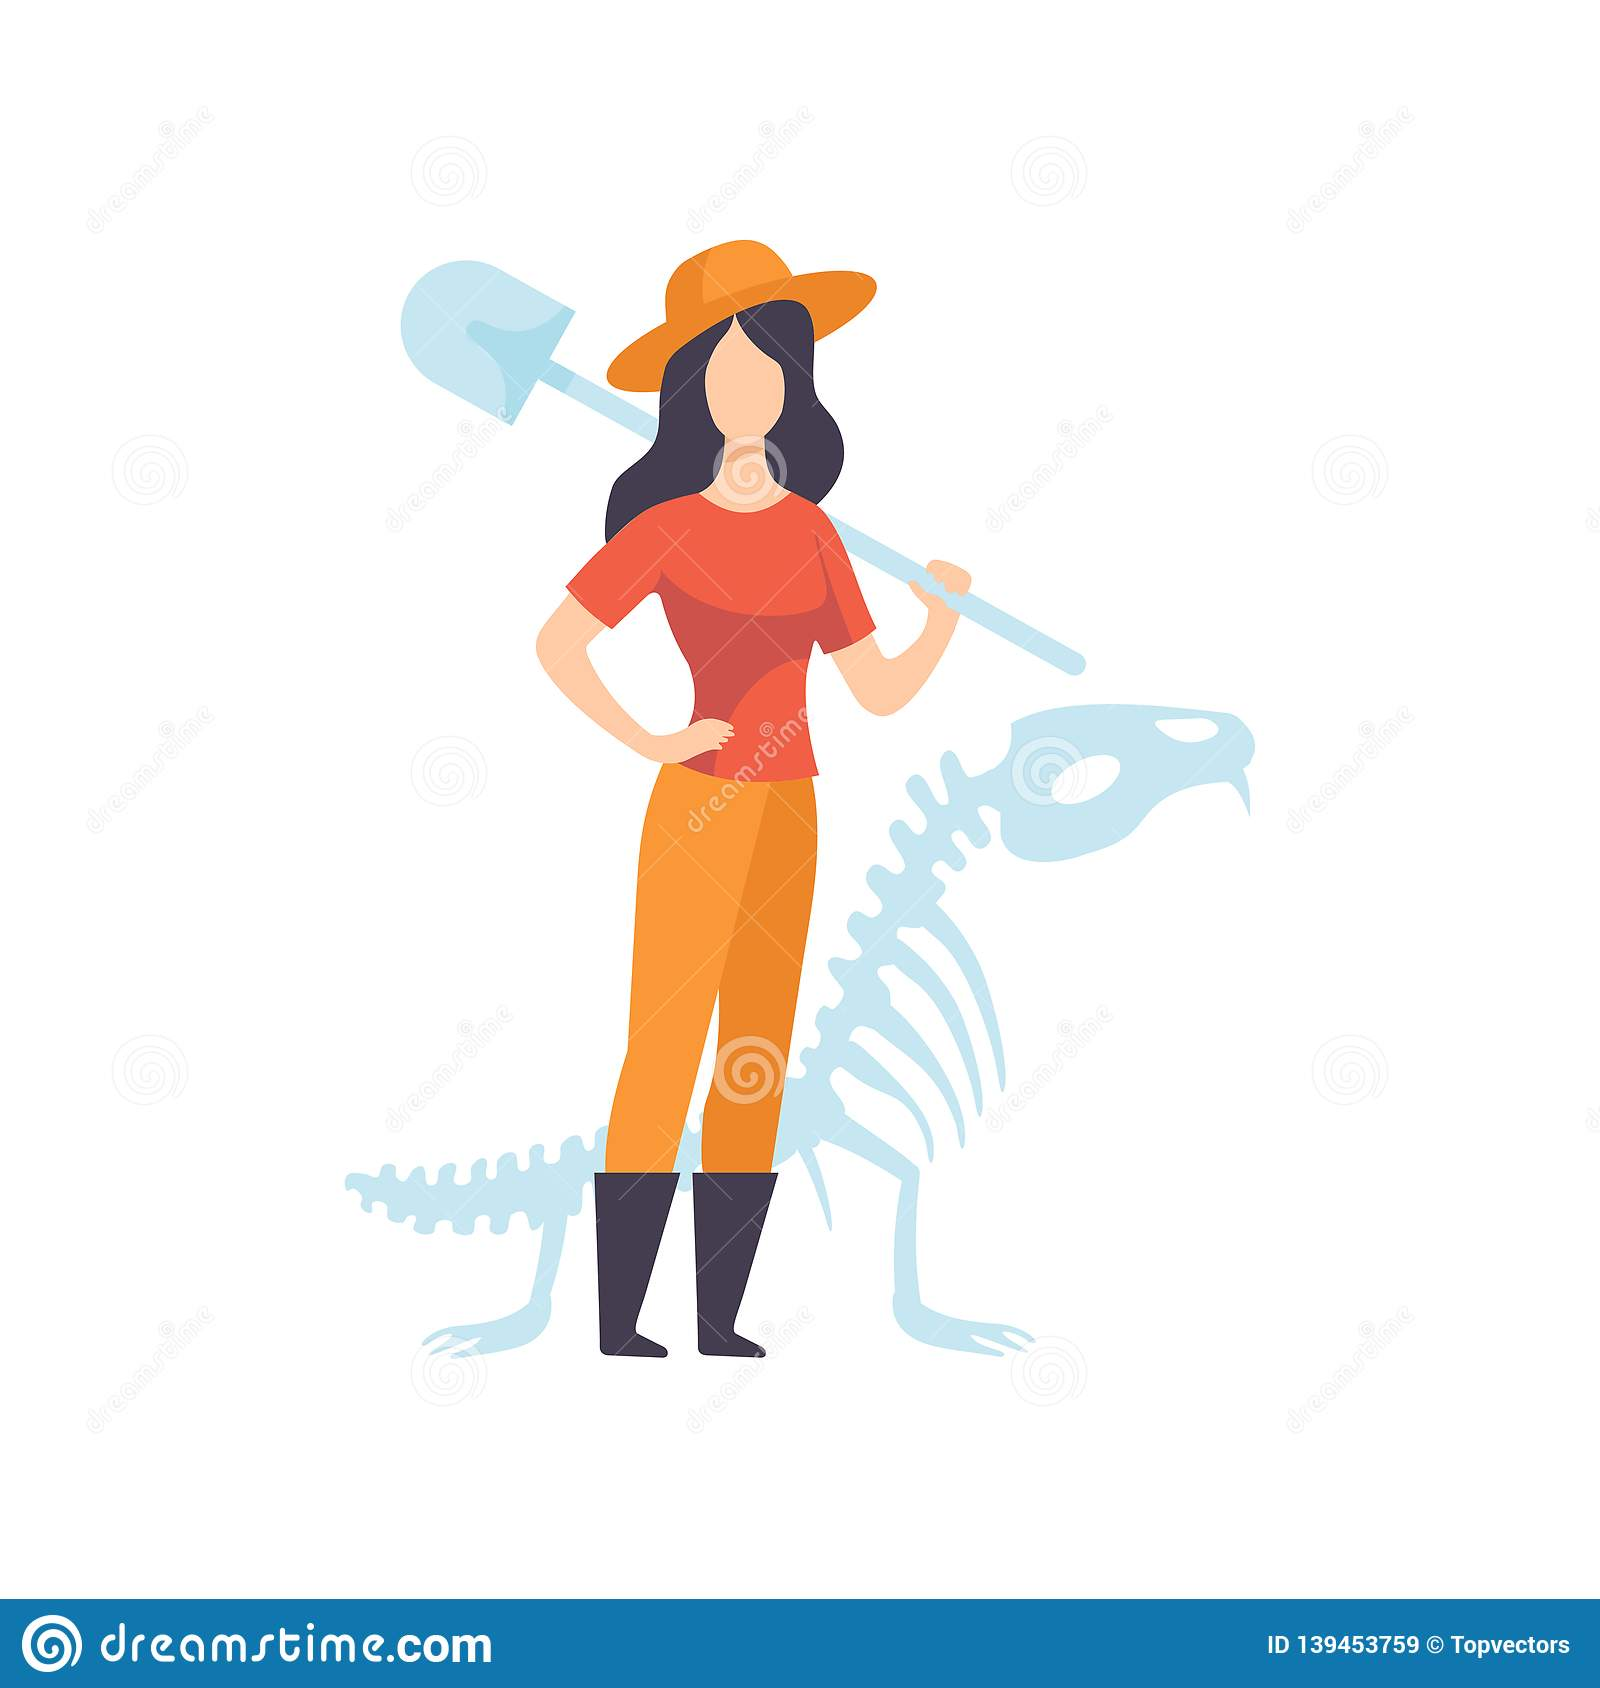 Female Archaeologists or Paleontologist Character Standing with Shovel Vector Illustration